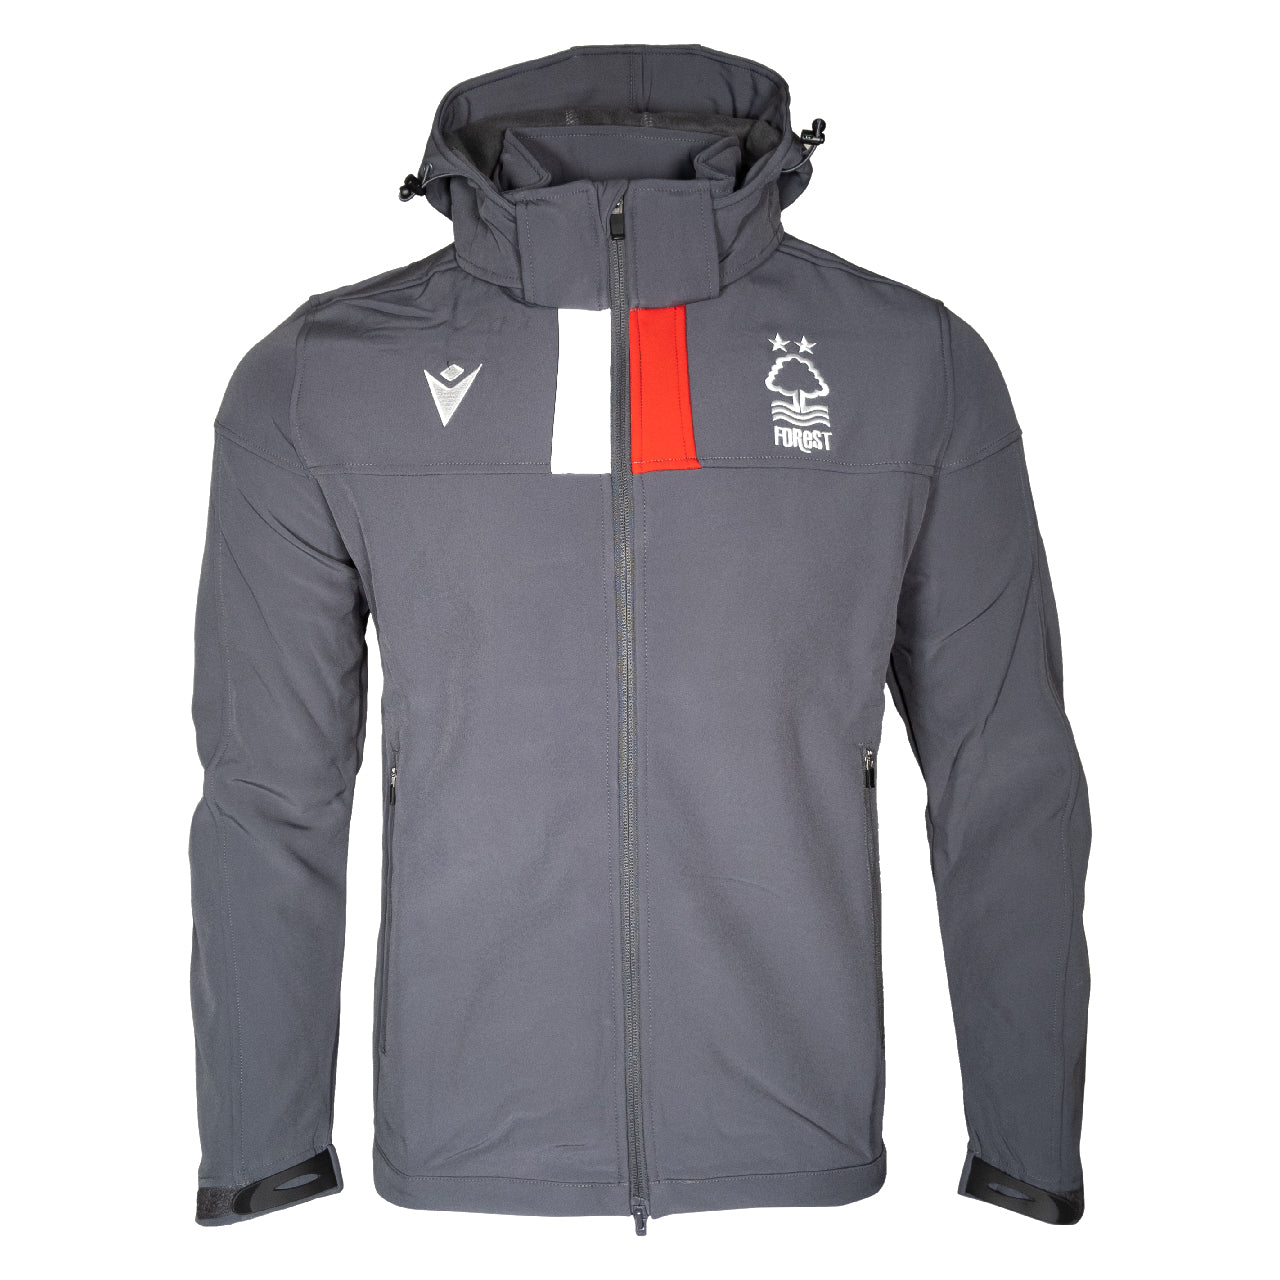 NFFC Mens Grey Staff Softshell Jacket 19/20